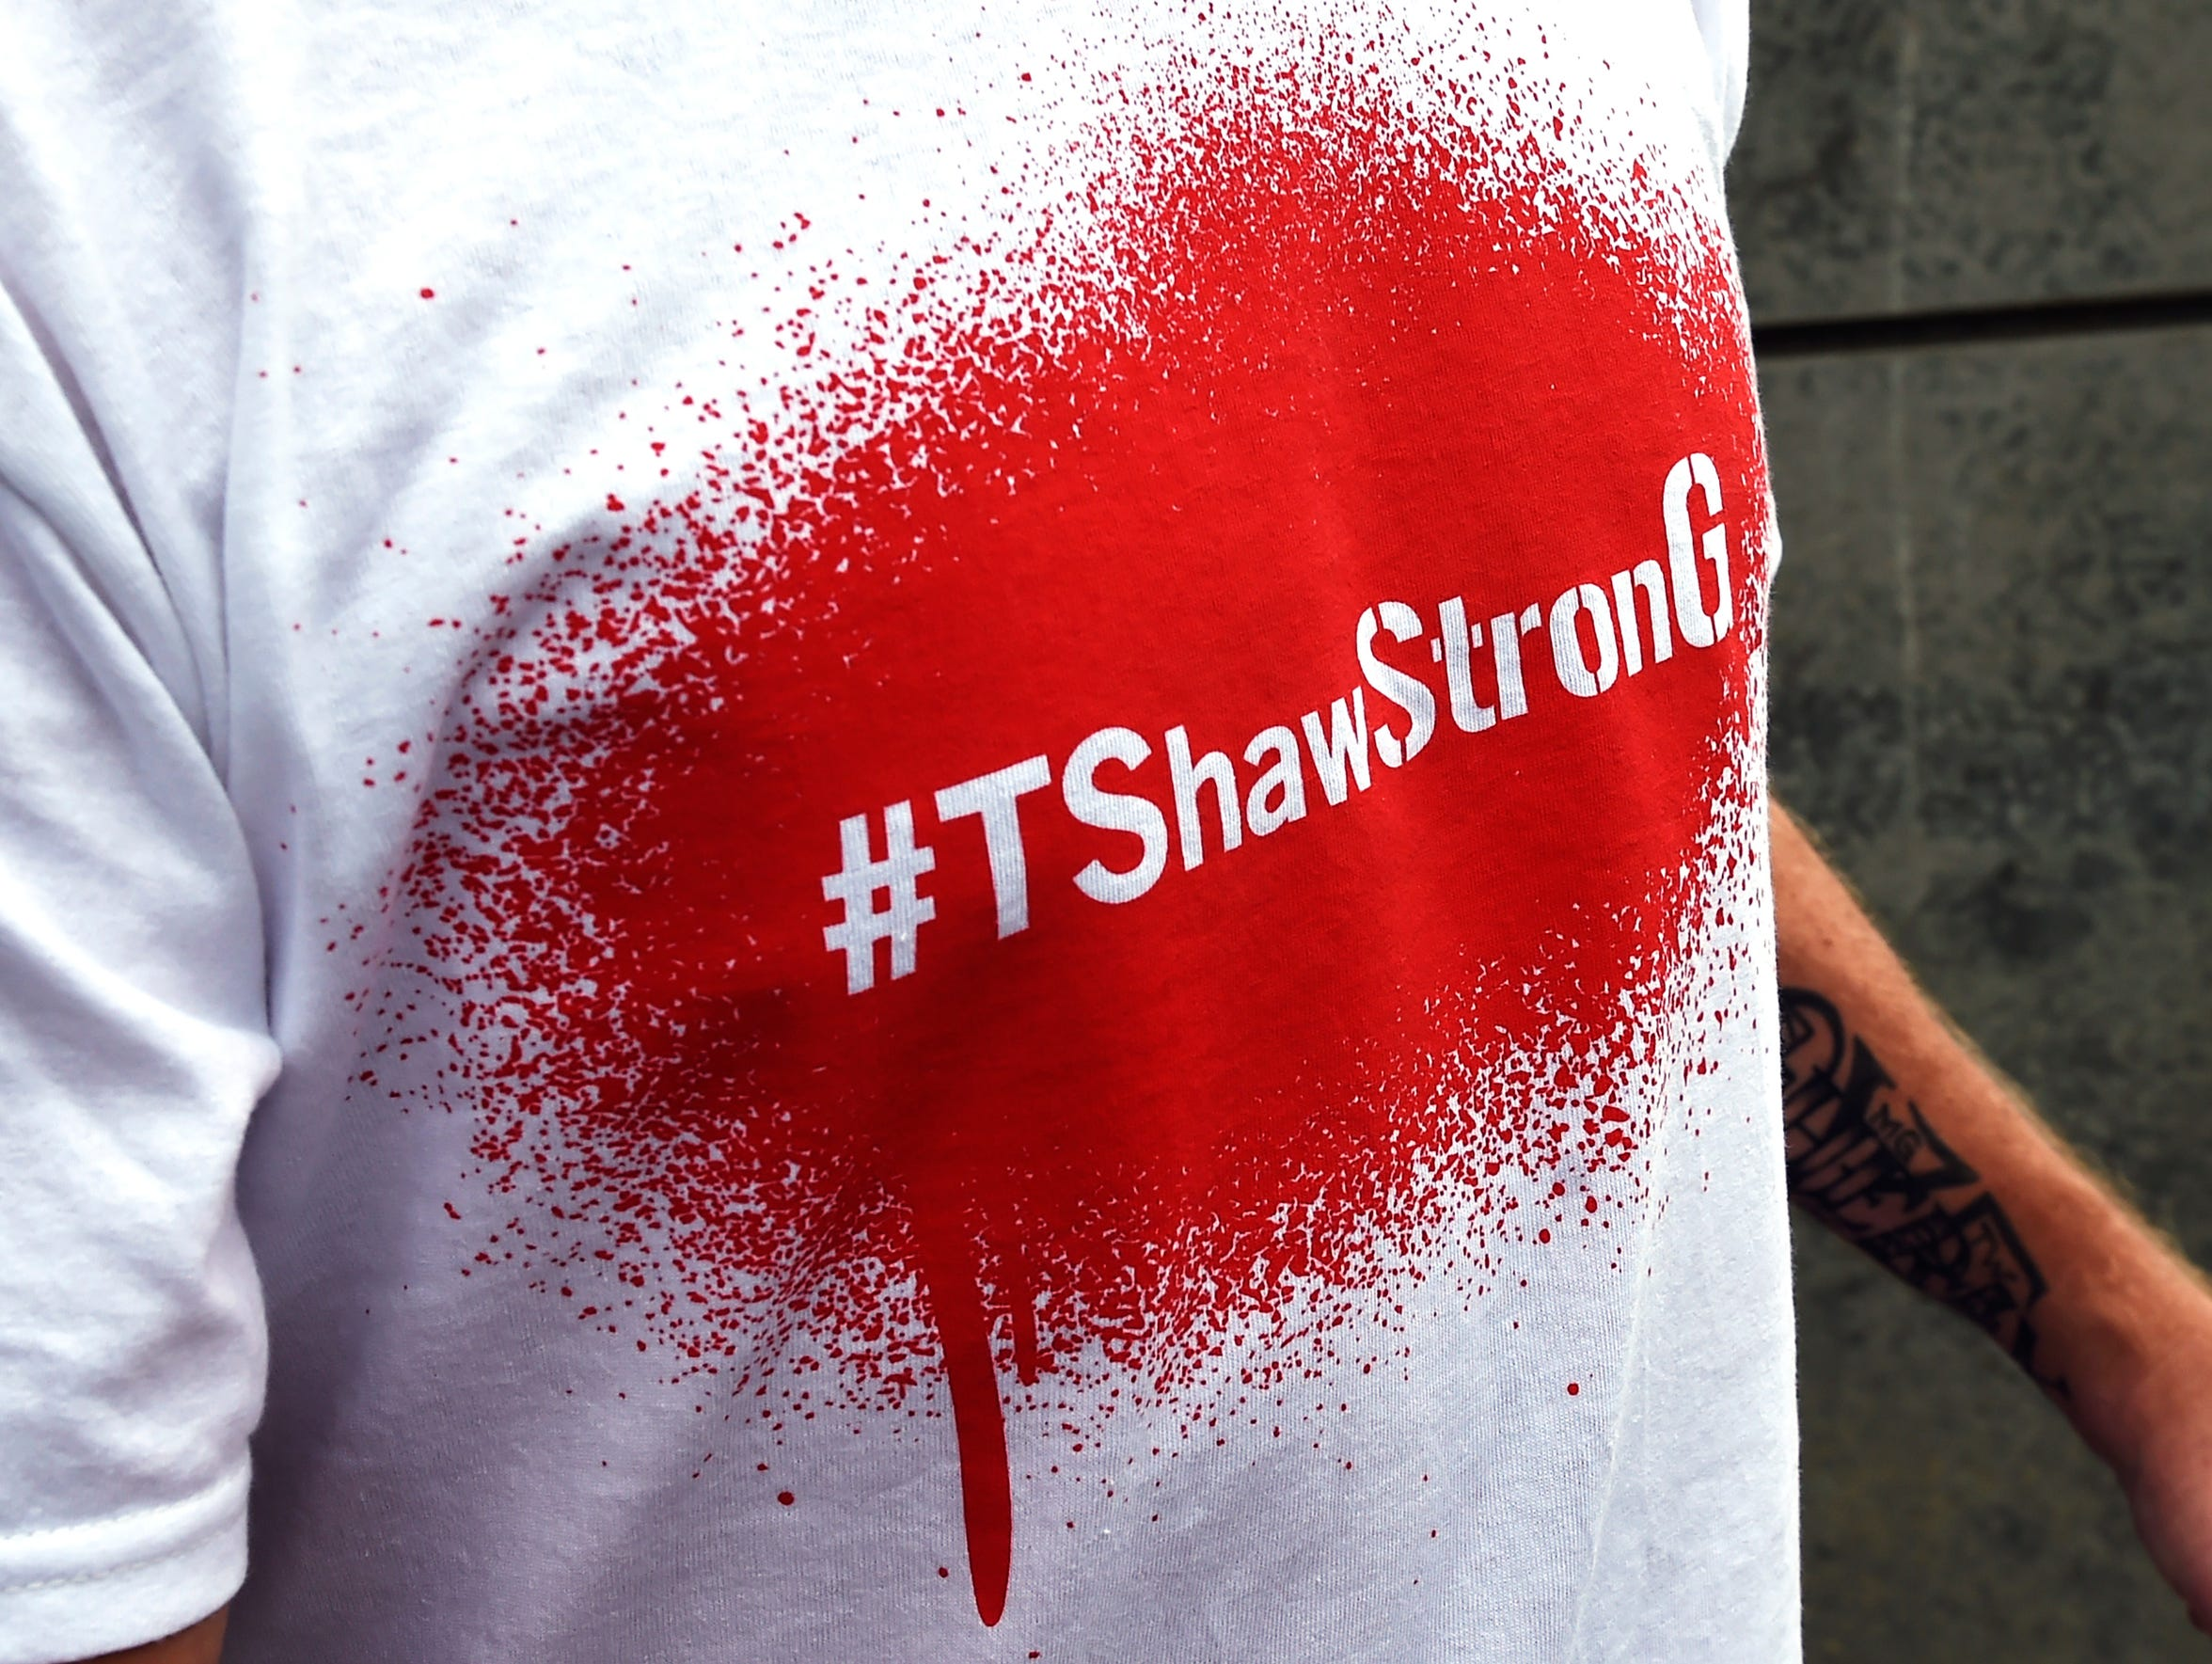 Tim Shaw wears a T-shirt with his hashtag, #TShawStronG.